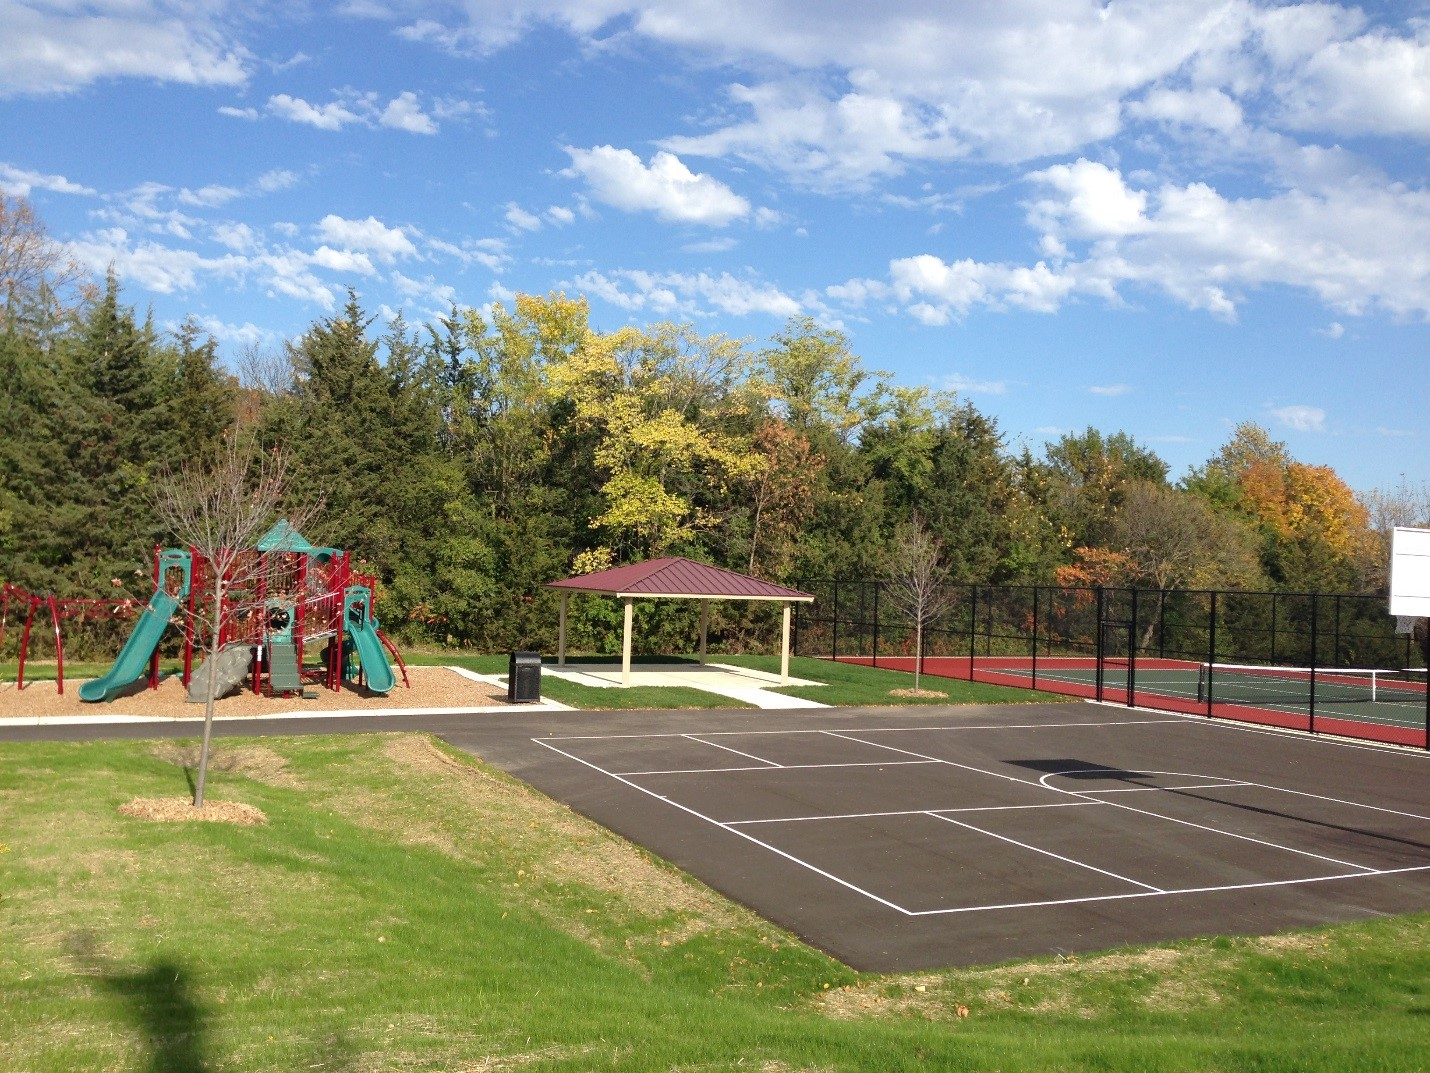 Paved Basketball Court, Shelter, and Playground